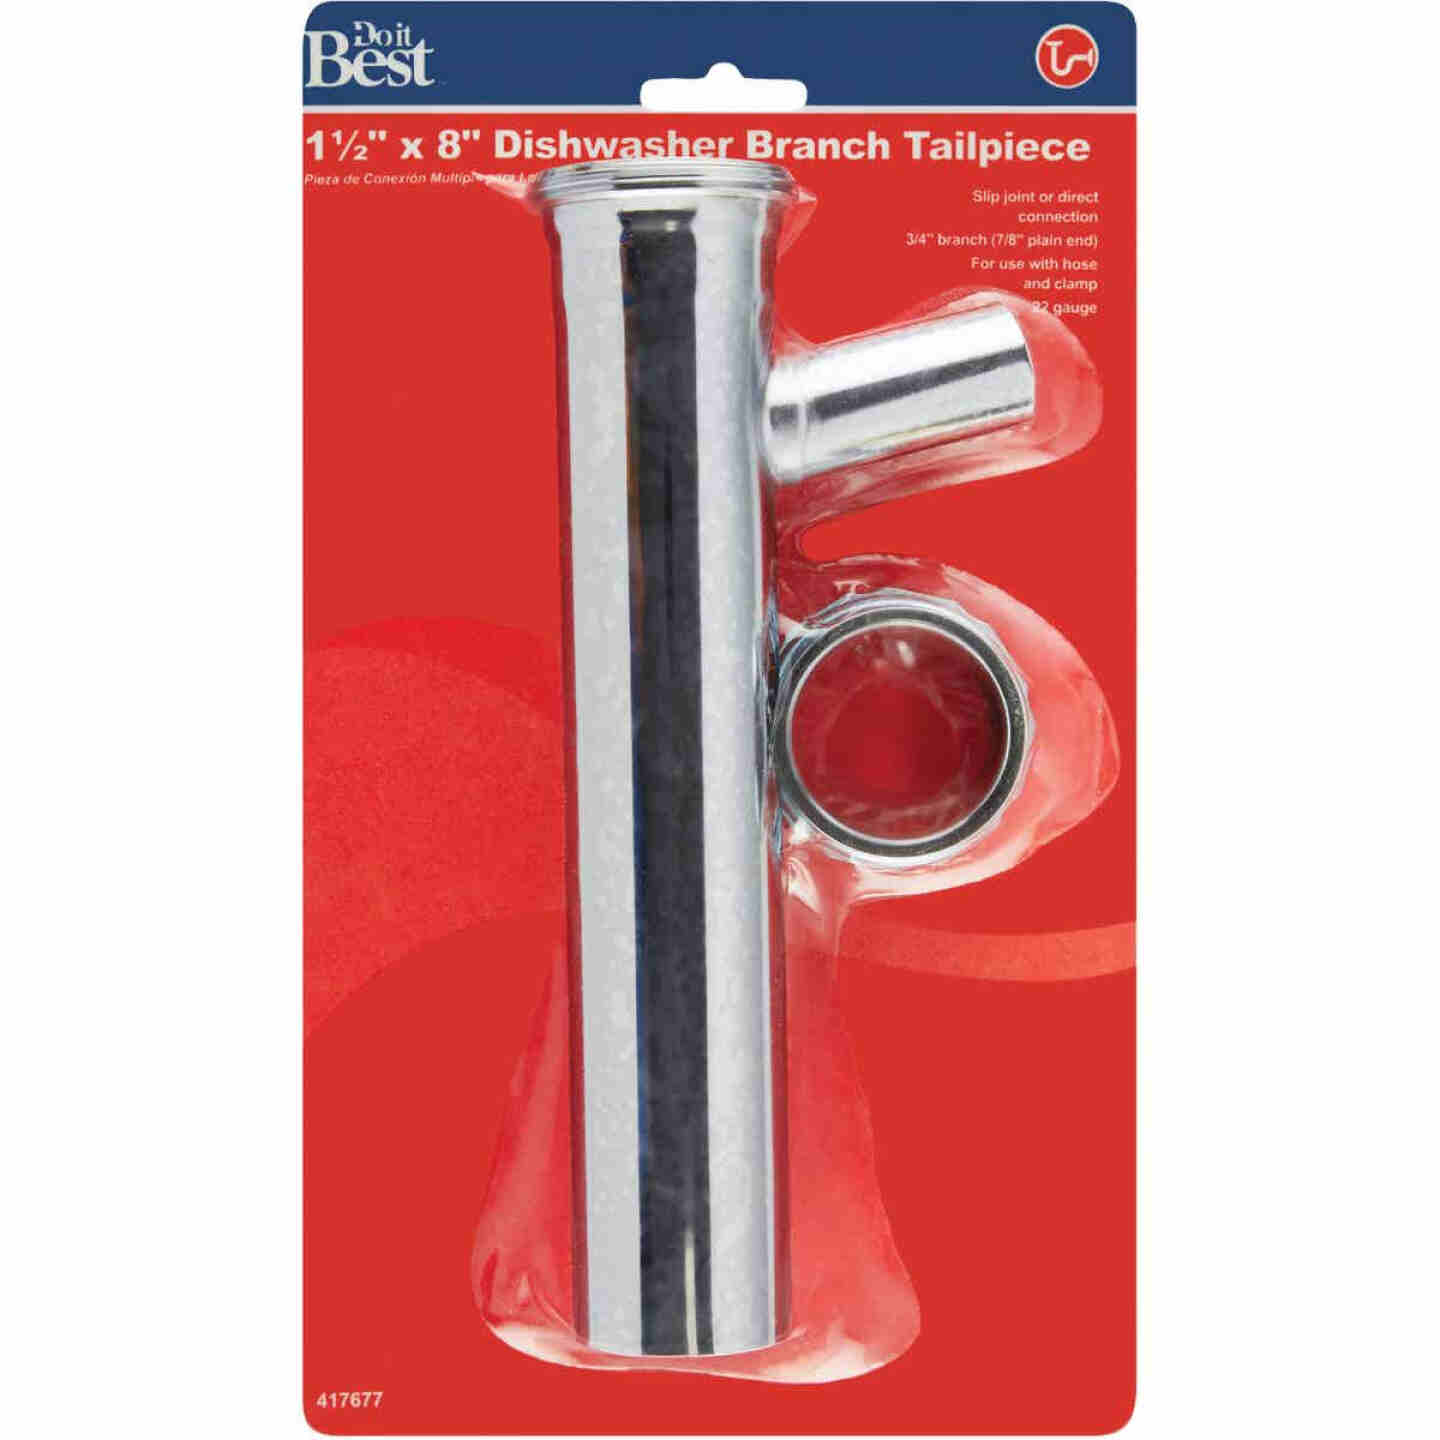 Do it 1-1/2 In. x 8 In. Chrome Dishwasher Tailpiece Image 2